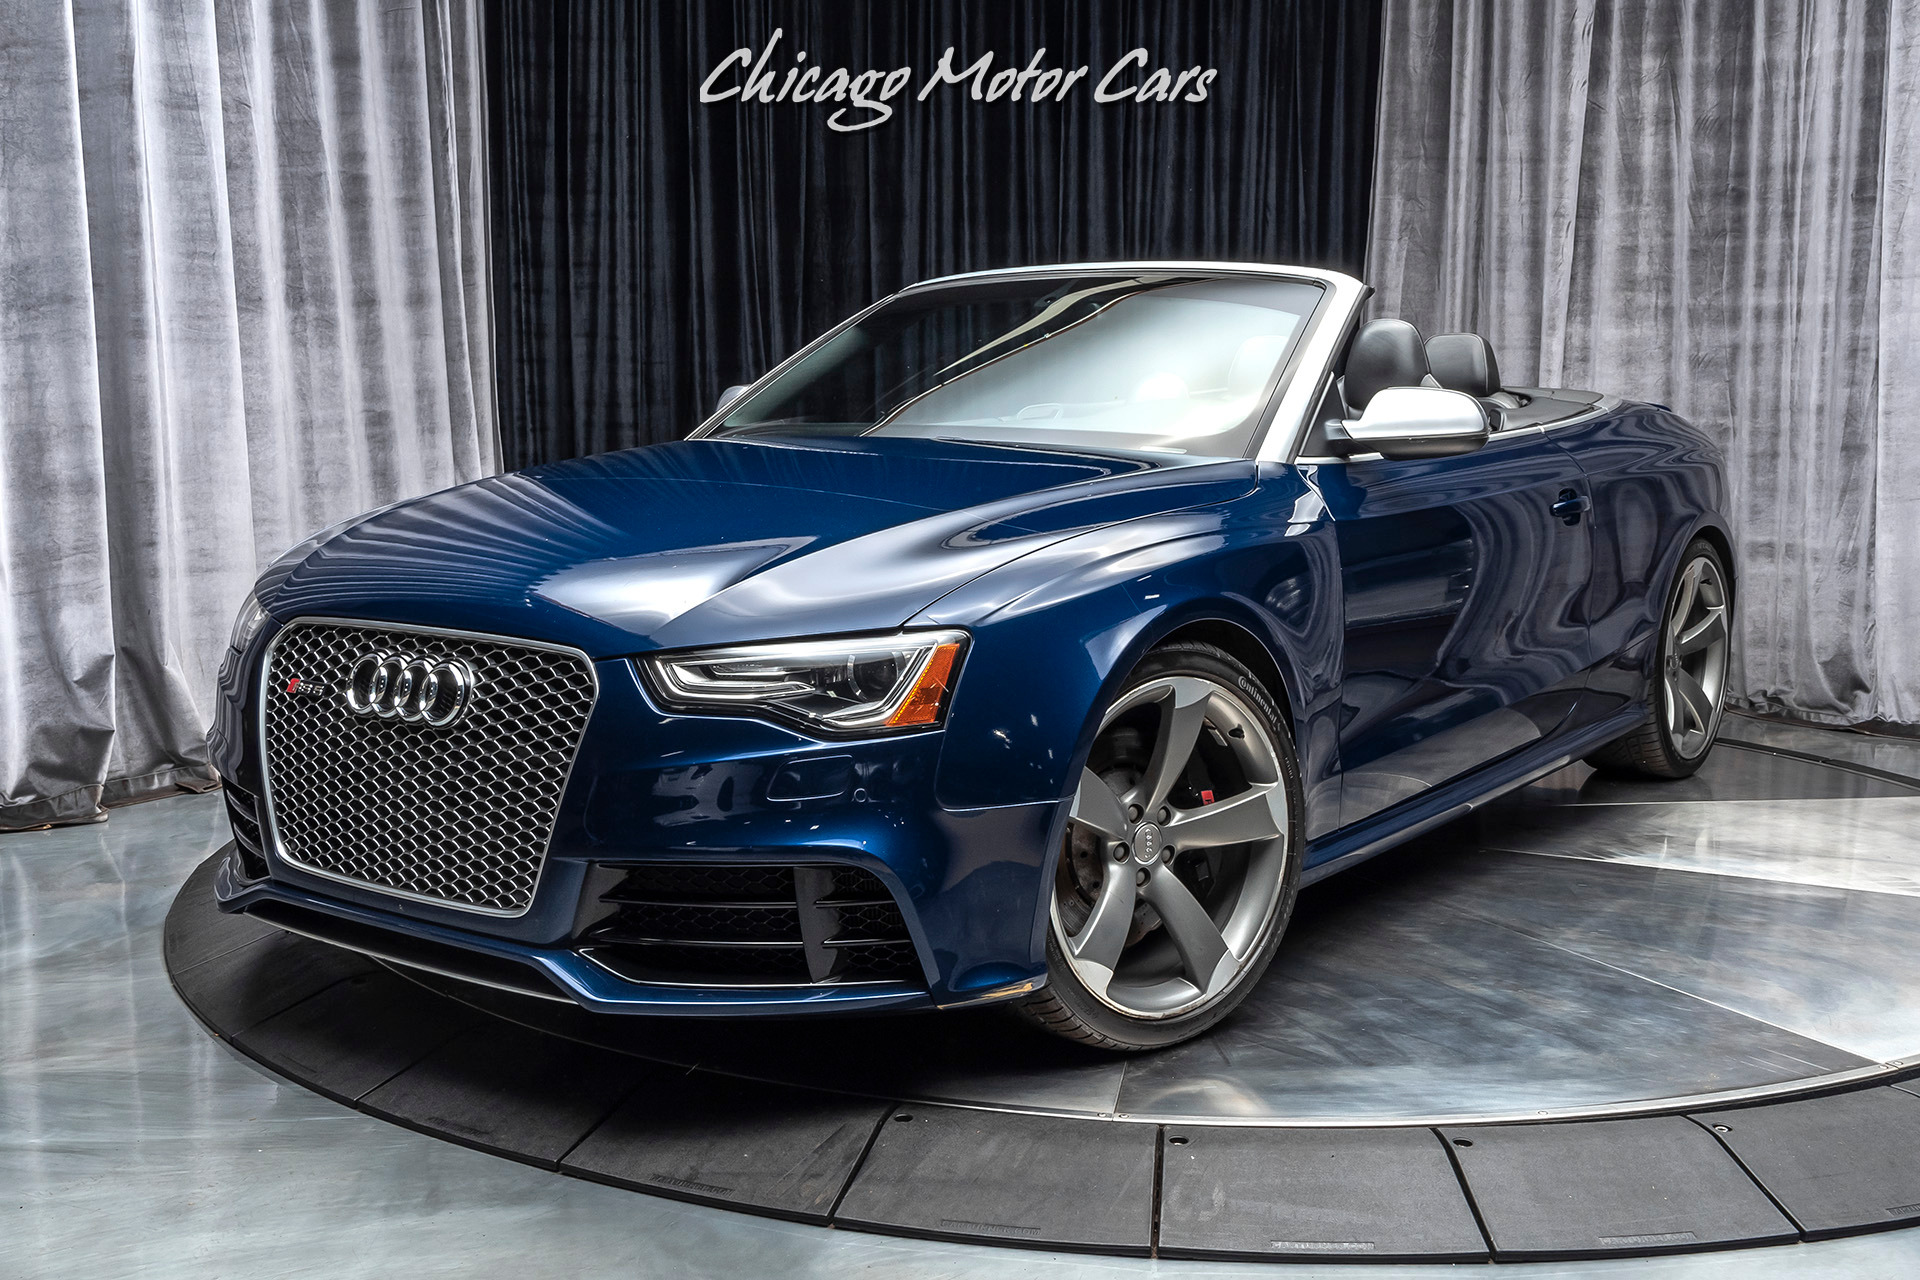 Used 2013 Audi Rs5 Cabriolet Quattro S Tronic Convertible Msrp 85k Sport Exhaust 450hp For Sale Special Pricing Chicago Motor Cars Stock 16270